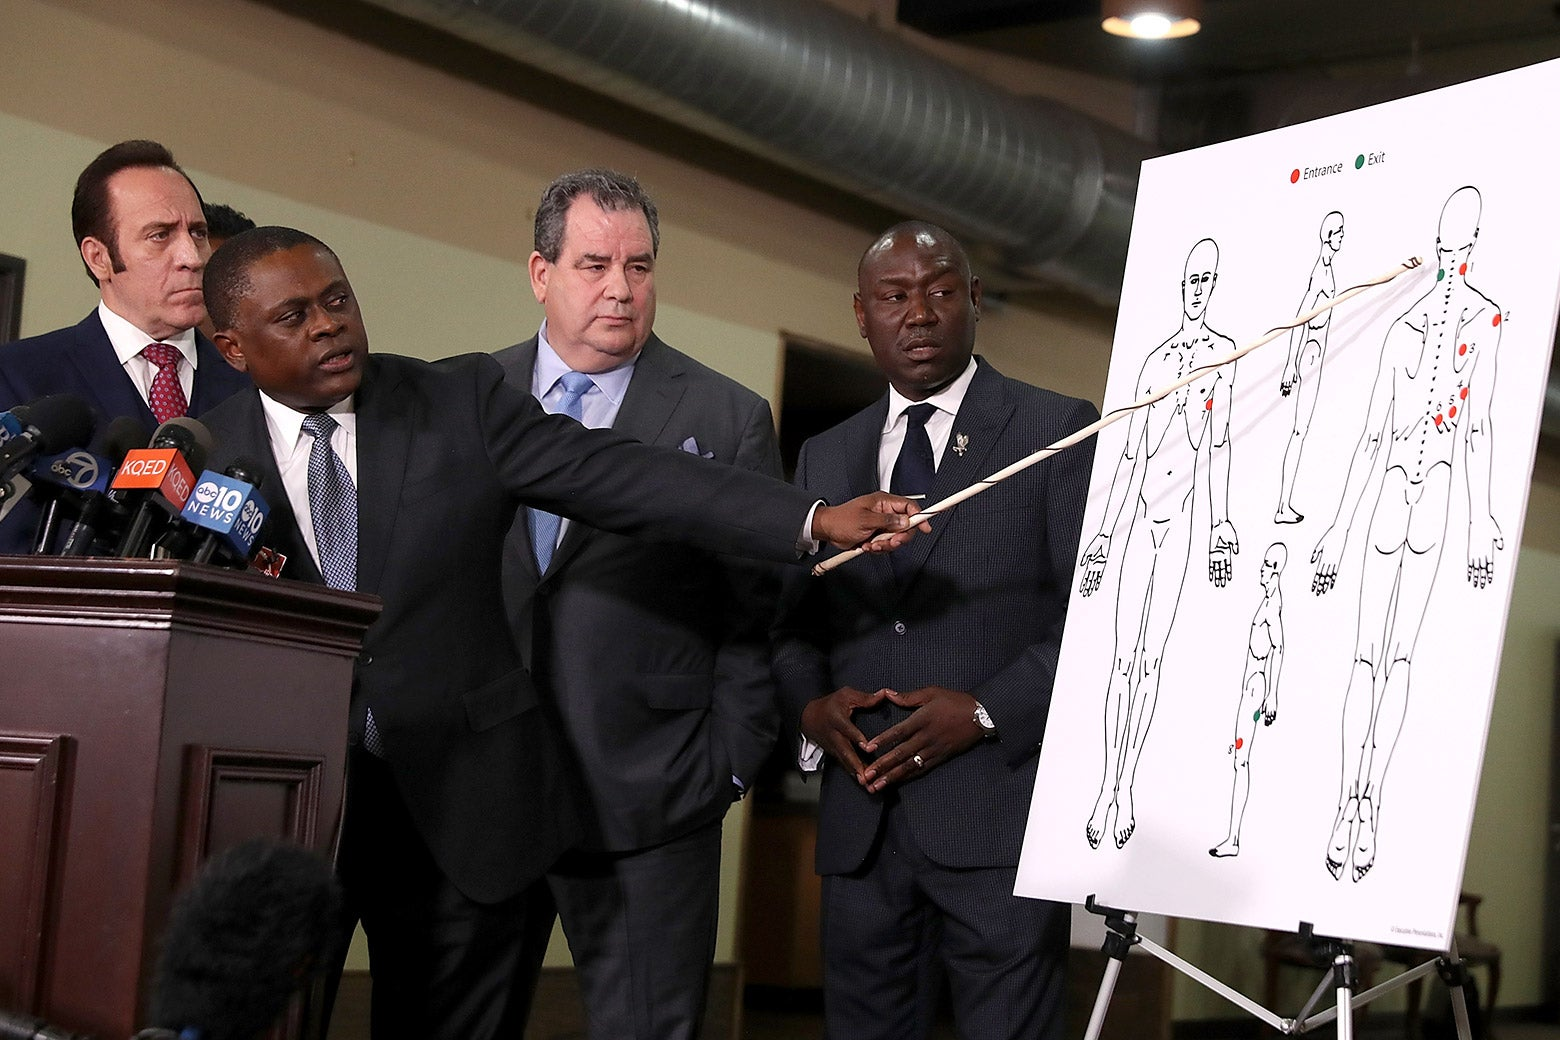 (L-R) Attorney Dale Galipo, Dr. Bennet Omalu, attorney Brian Panish and attorney Ben Crump examine a picture showing gunshot wounds to Stephon Clark during a news conference at the Southside Christian Center on March 30, 2018 in Sacramento, California.